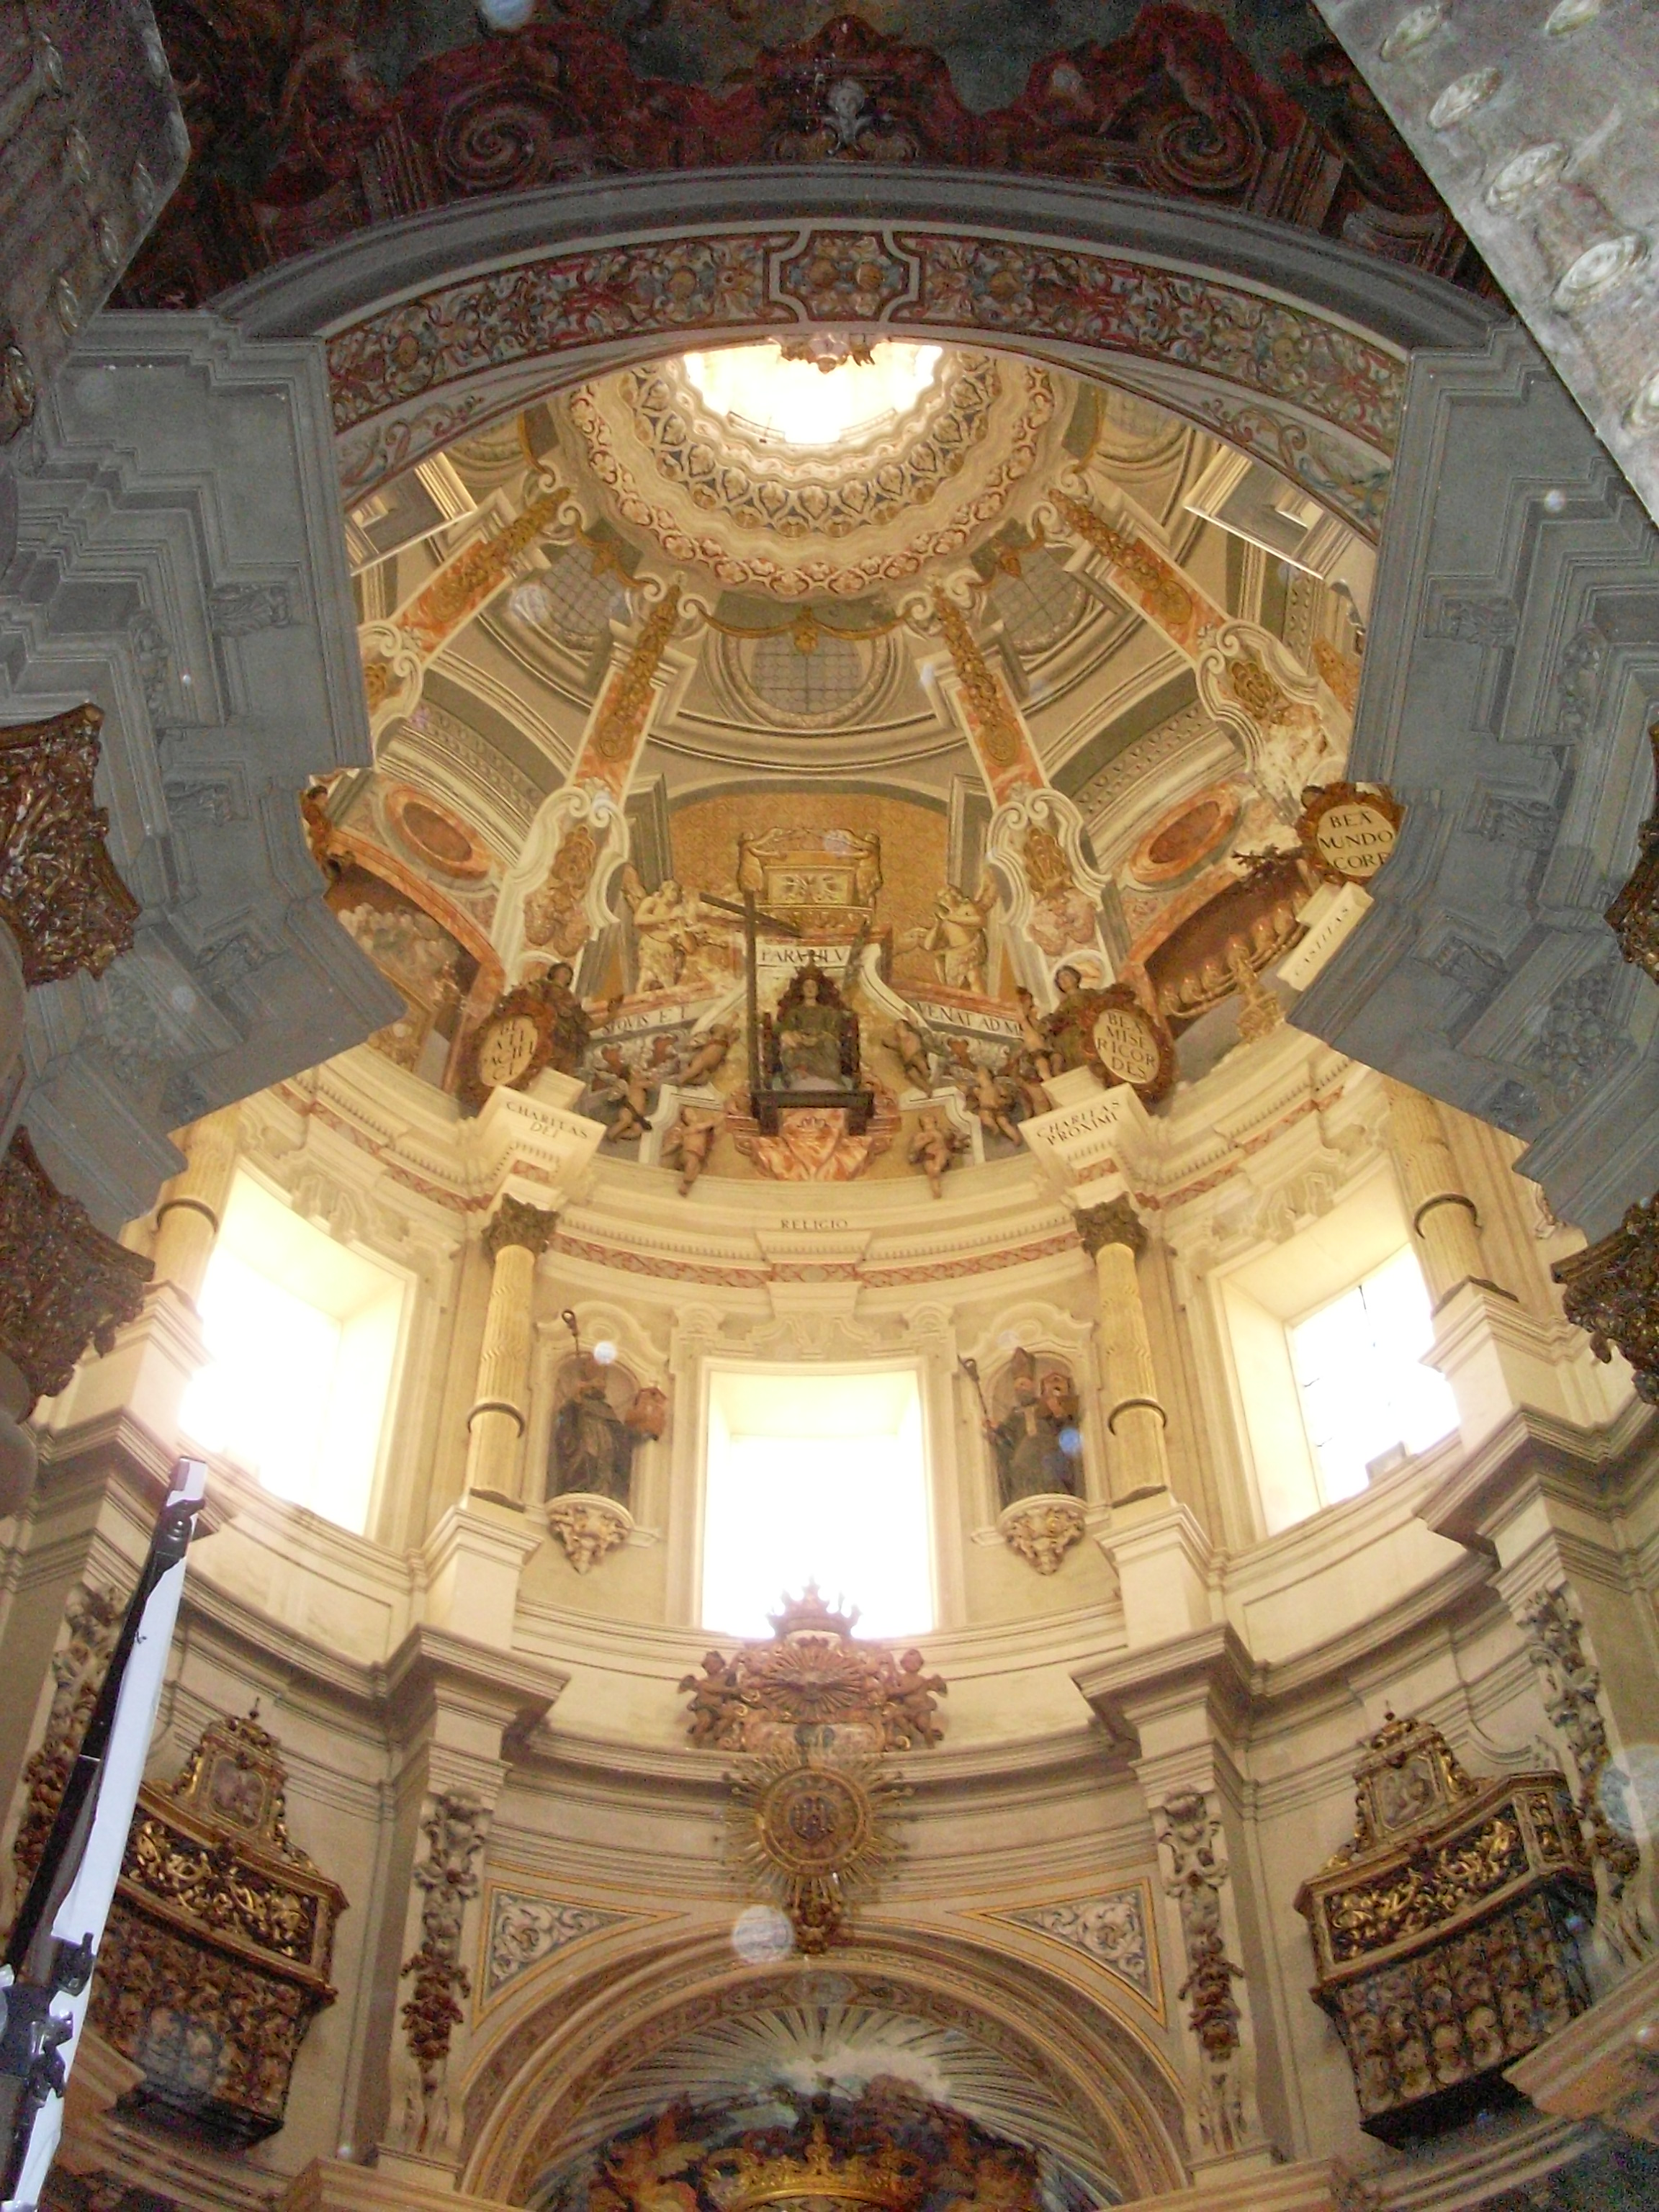 http://upload.wikimedia.org/wikipedia/commons/b/b2/Interior_Iglesia_San_Luis.JPG